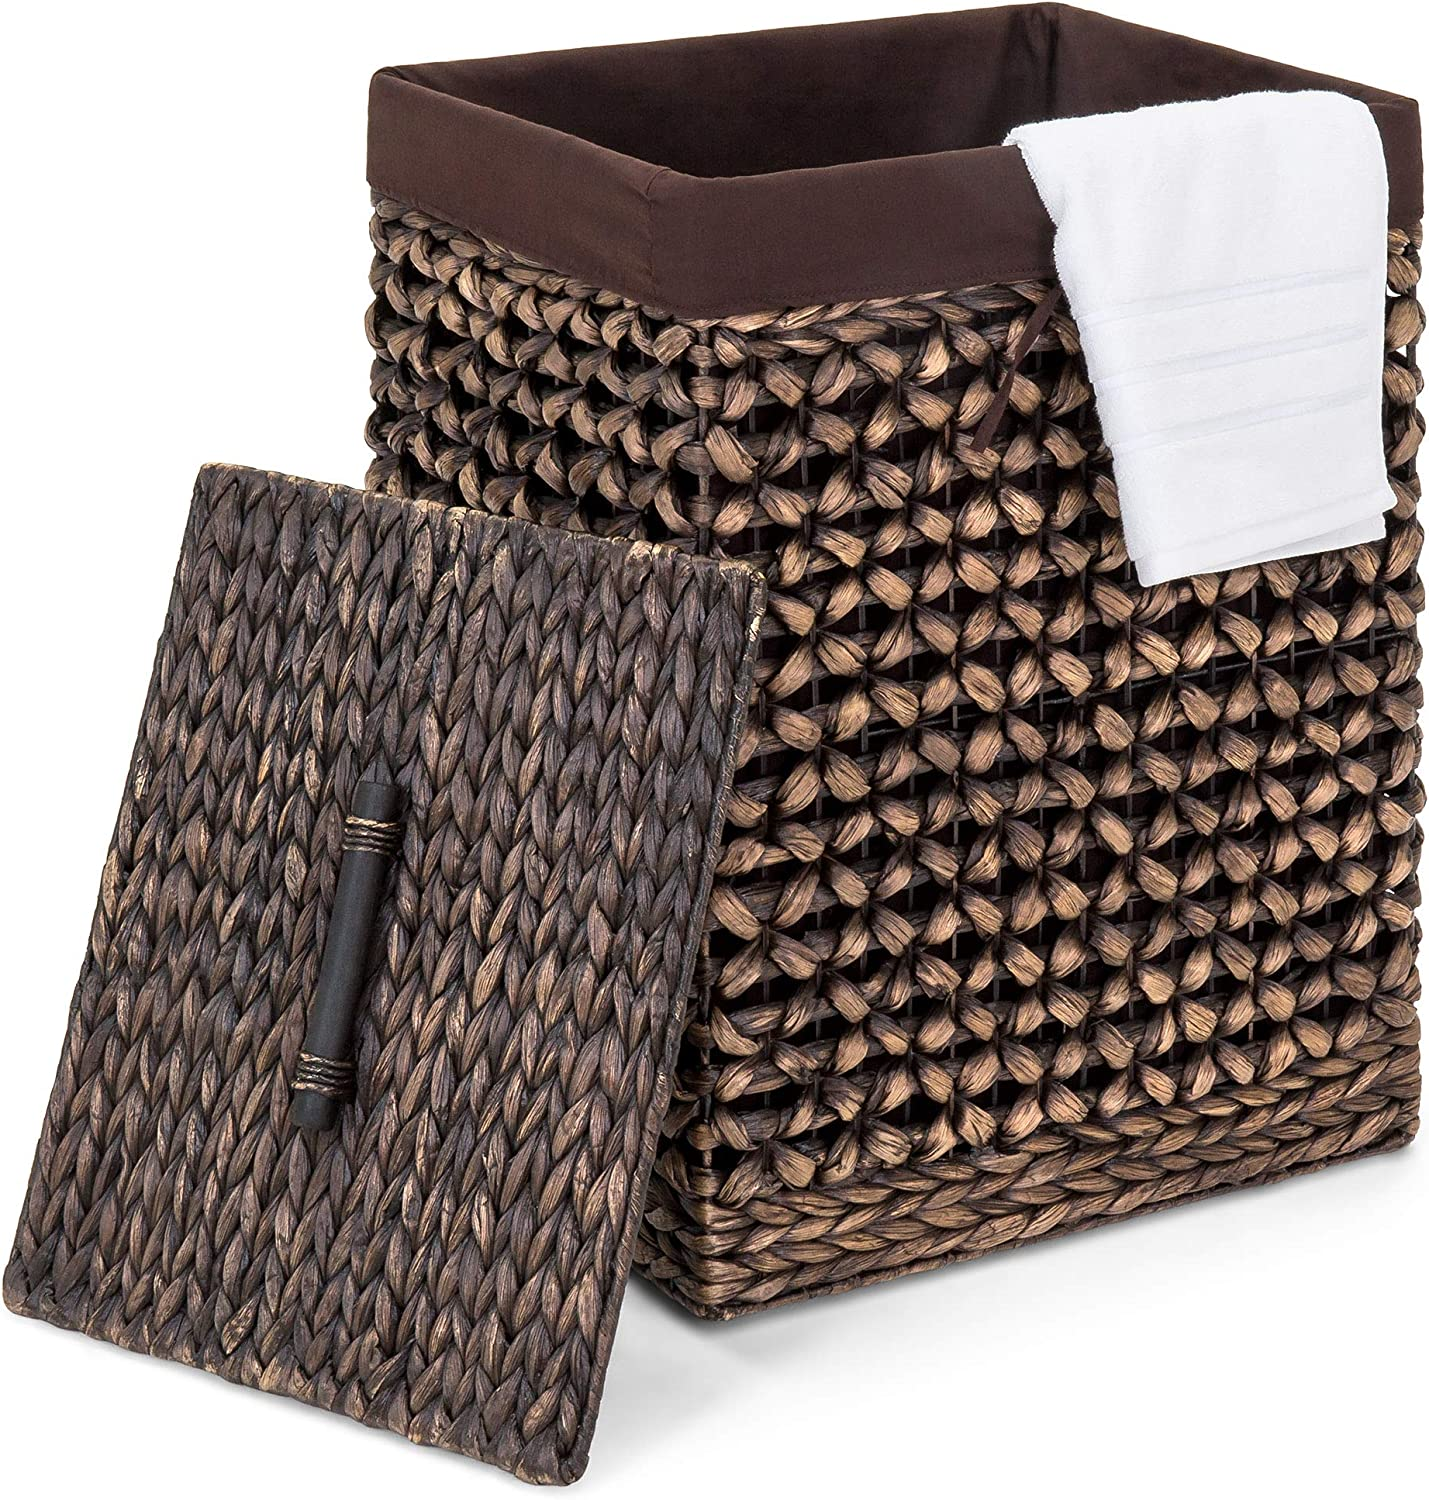 Best Choice Products Decorative Woven Water Hyacinth Wicker Laundry Clothes Hamper Basket w/Liner, Lid - Espresso